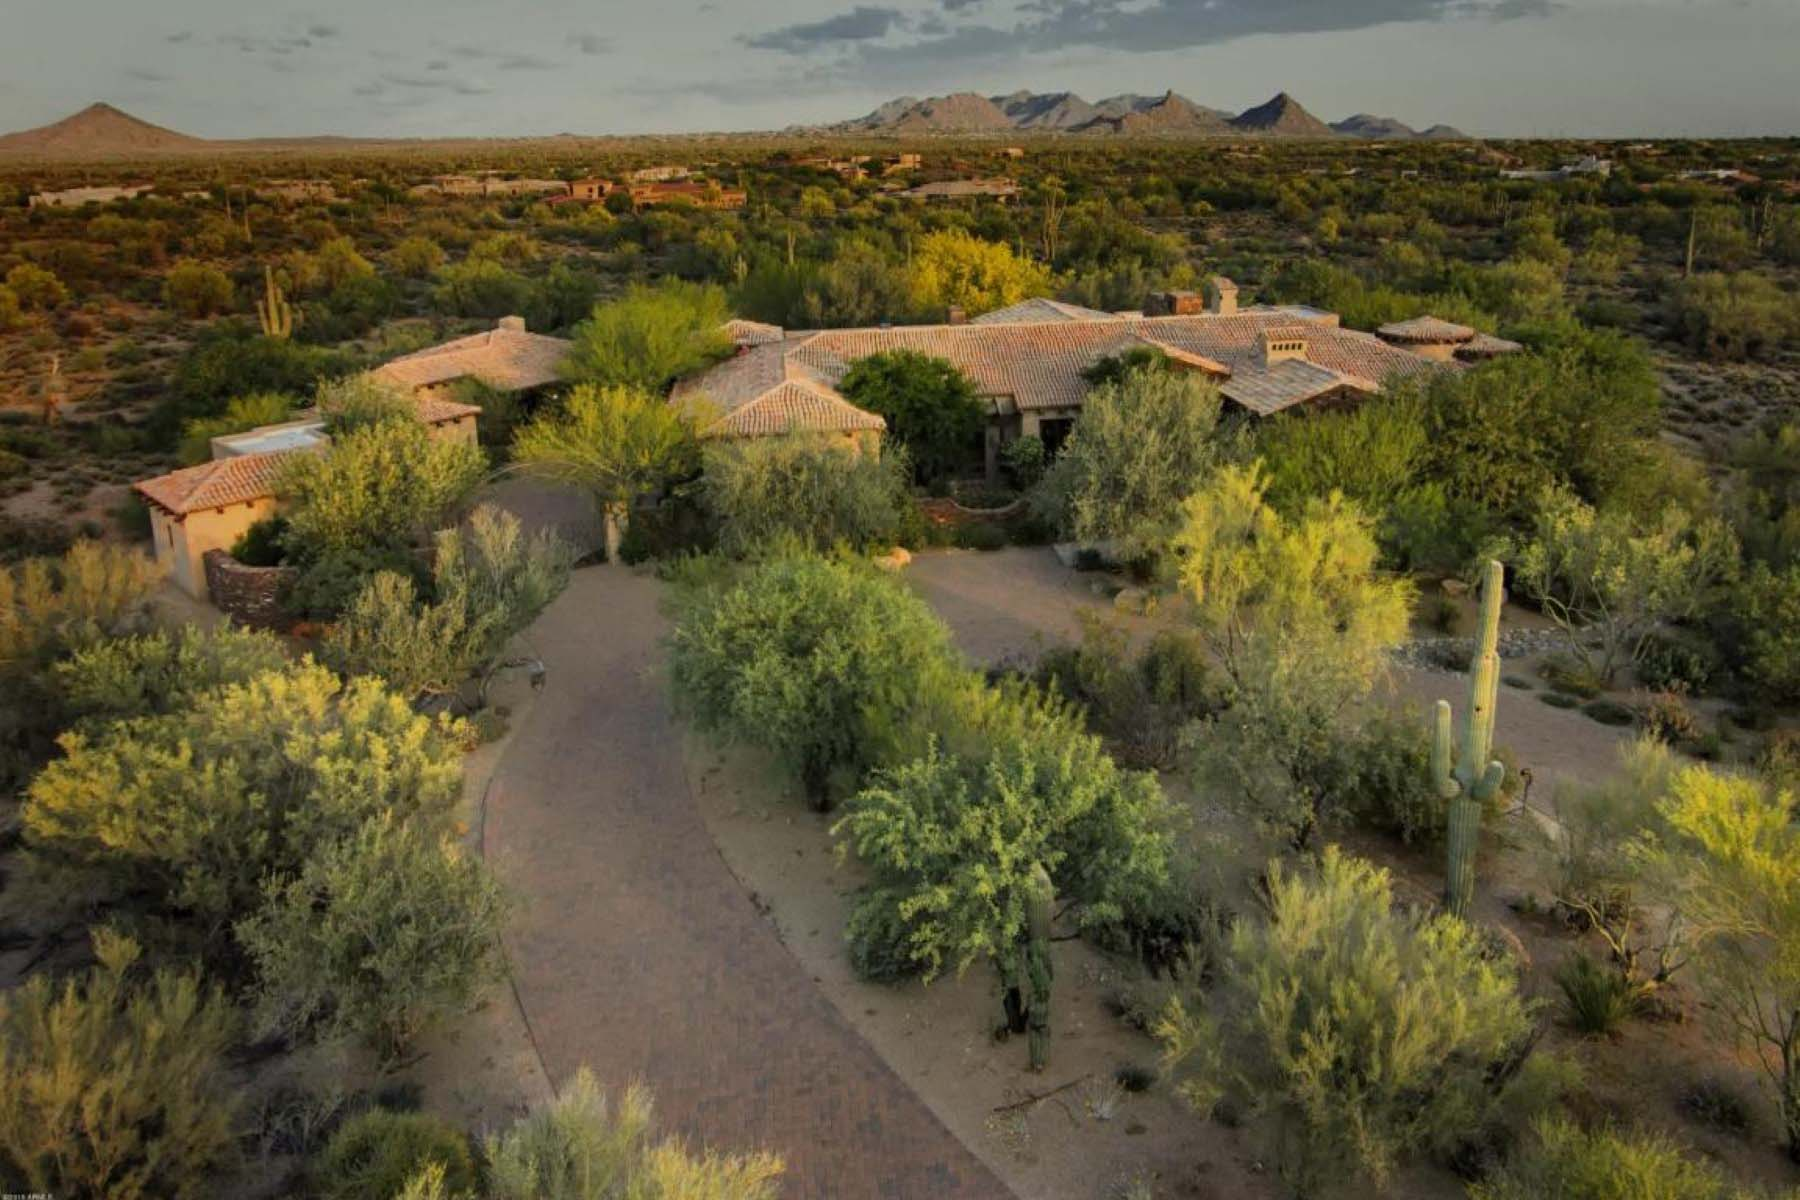 独户住宅 为 销售 在 Timeless and elegant family estate on three acres in Whisper Rock Estates. 8525 E WHISPER ROCK TRL Scottsdale, 亚利桑那州 85266 美国